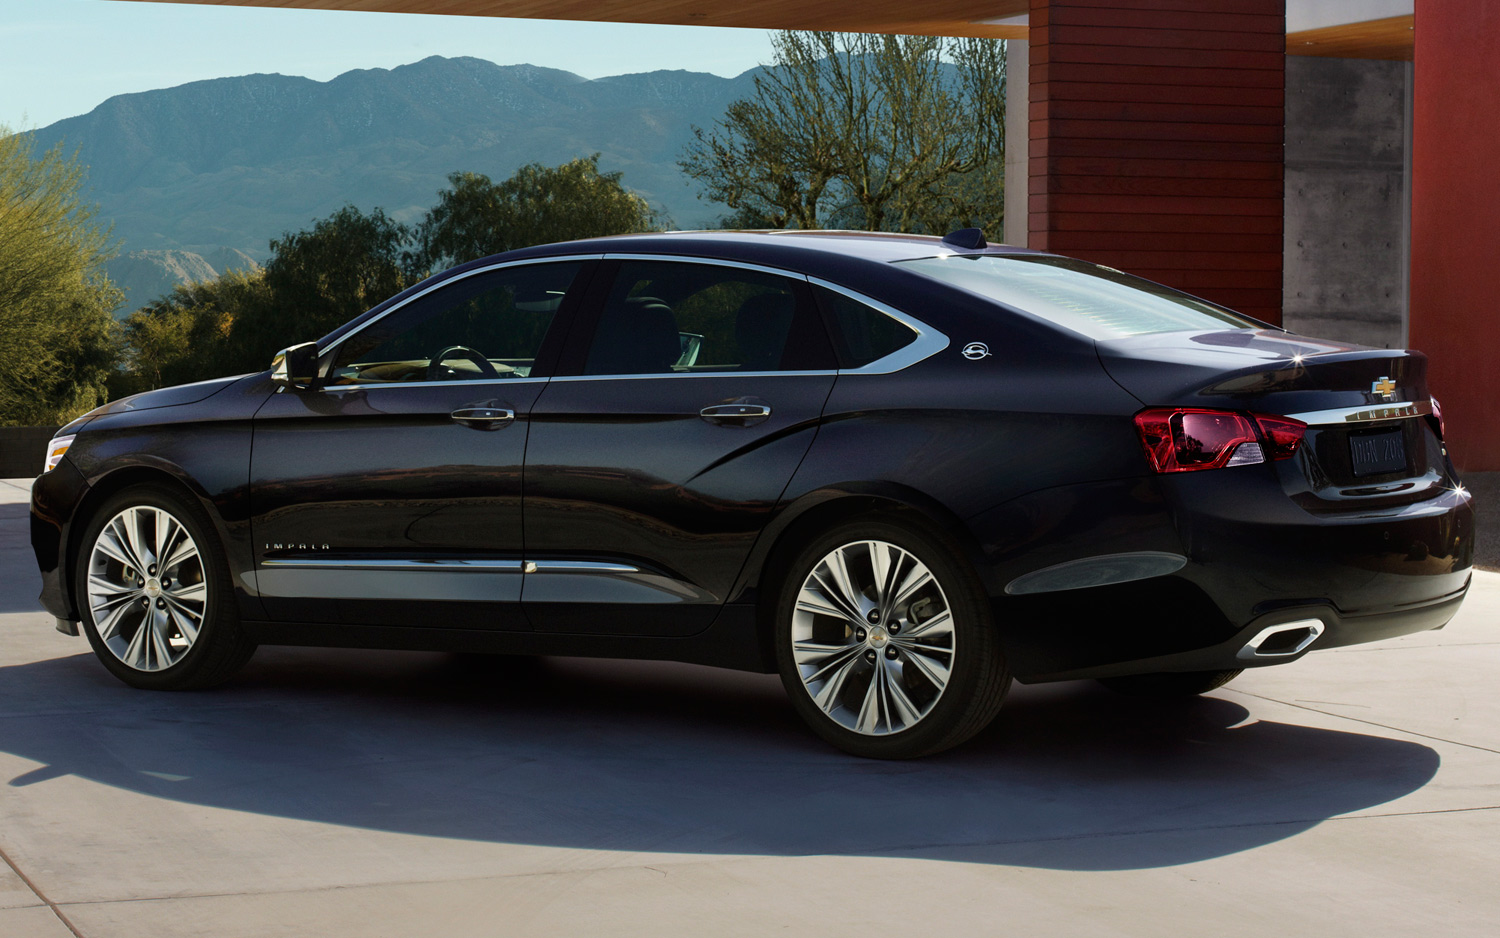 2014 chevrolet impala pictures information and specs auto chevrolet impala 2014 wallpaper 7 voltagebd Image collections